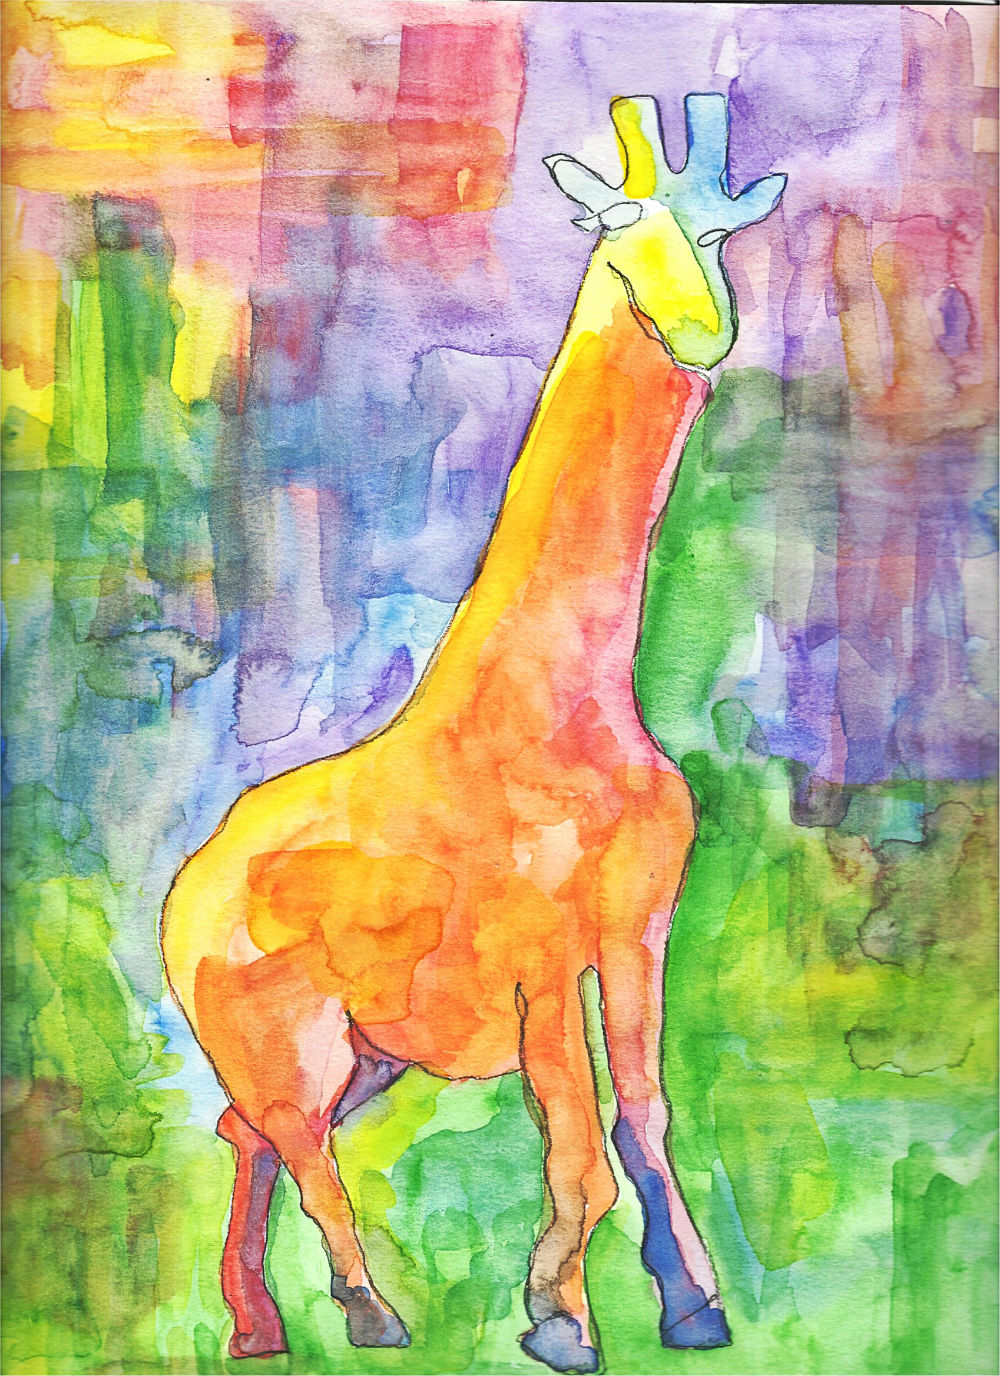 Blind Contour Line Drawing and Watercolor Painting of a Giraffe by Beth Hemmila